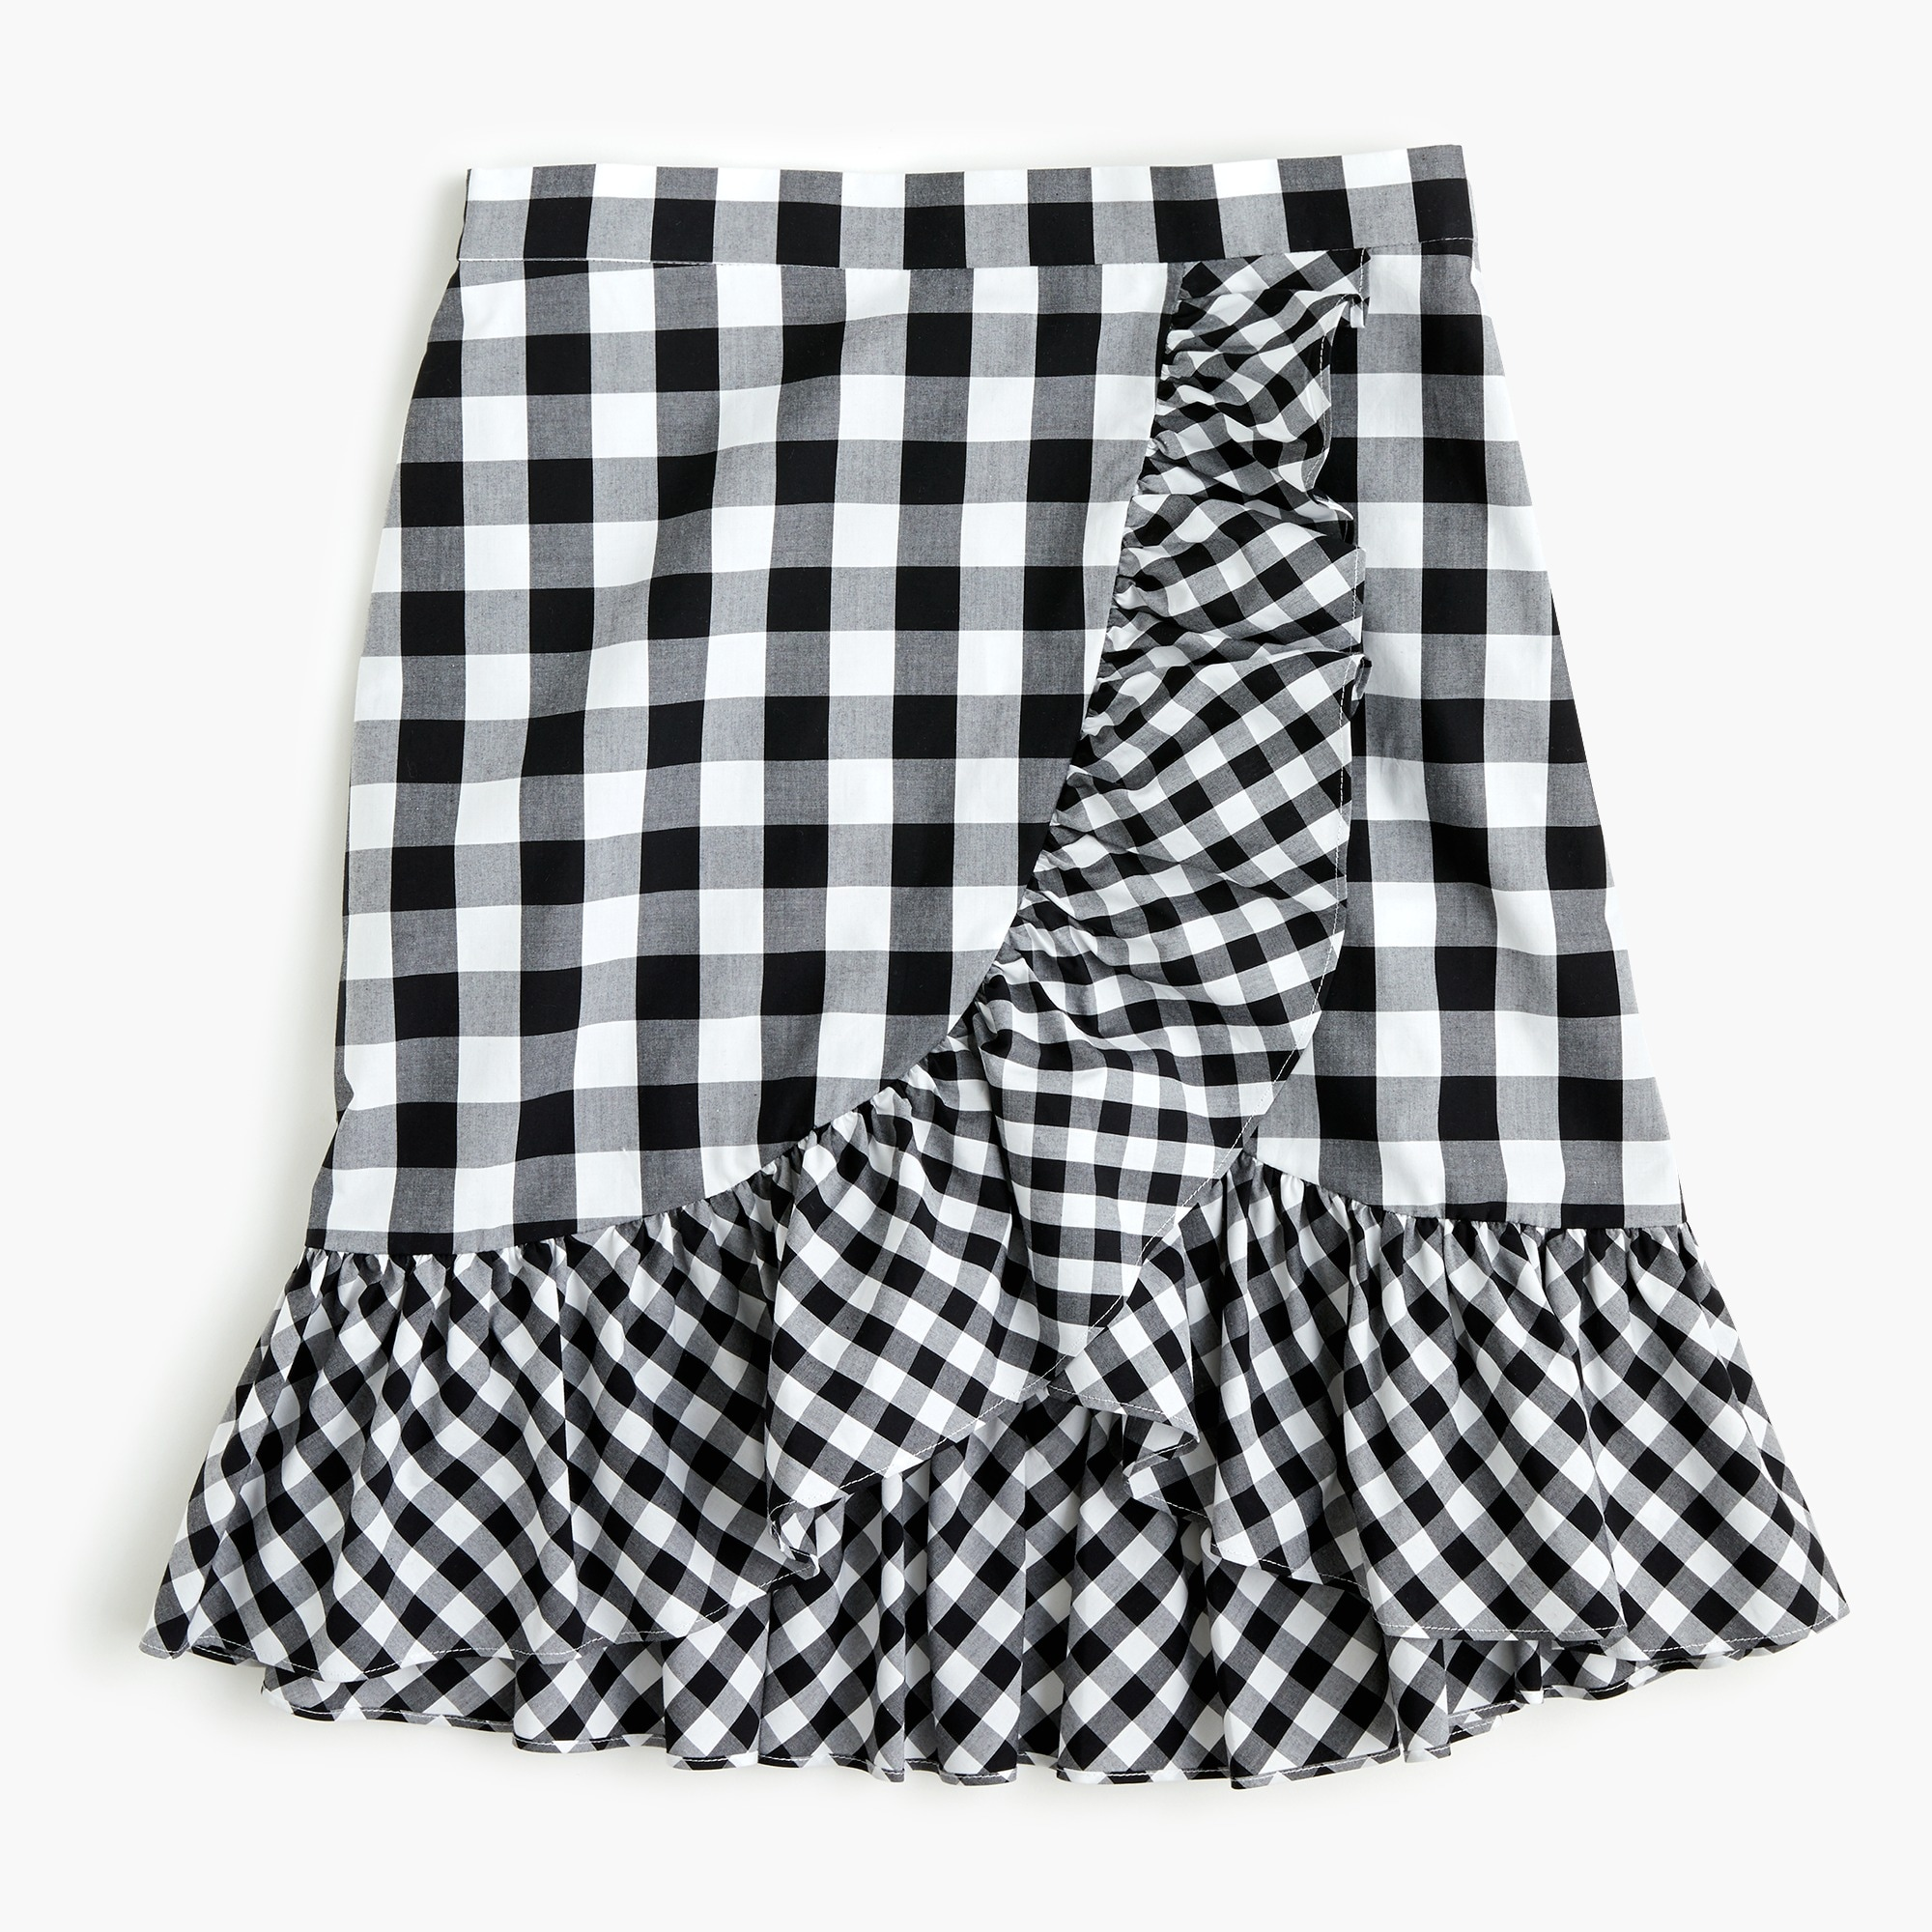 Image 2 for Tall ruffle mini skirt in gingham